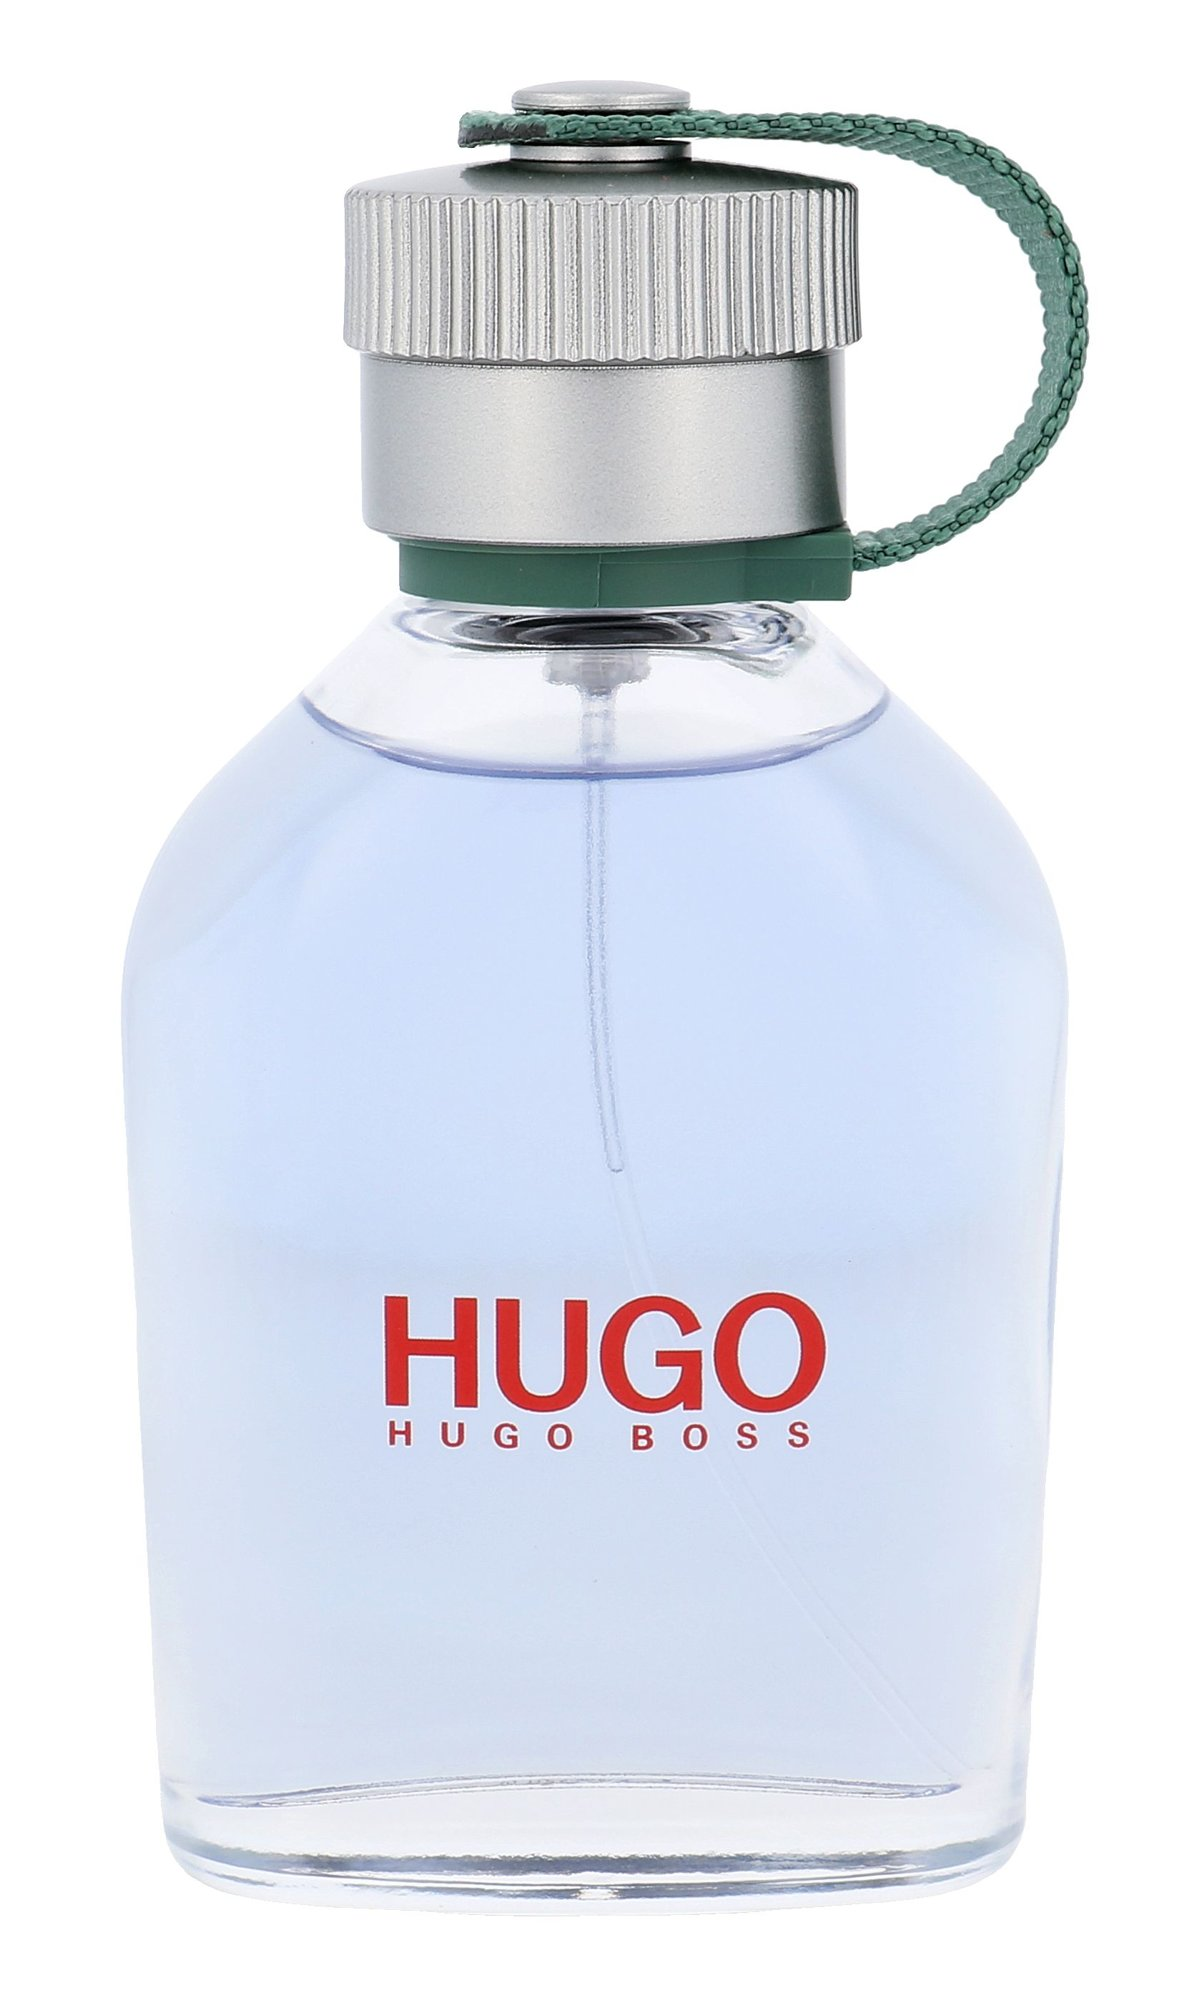 HUGO BOSS Hugo EDT 75ml